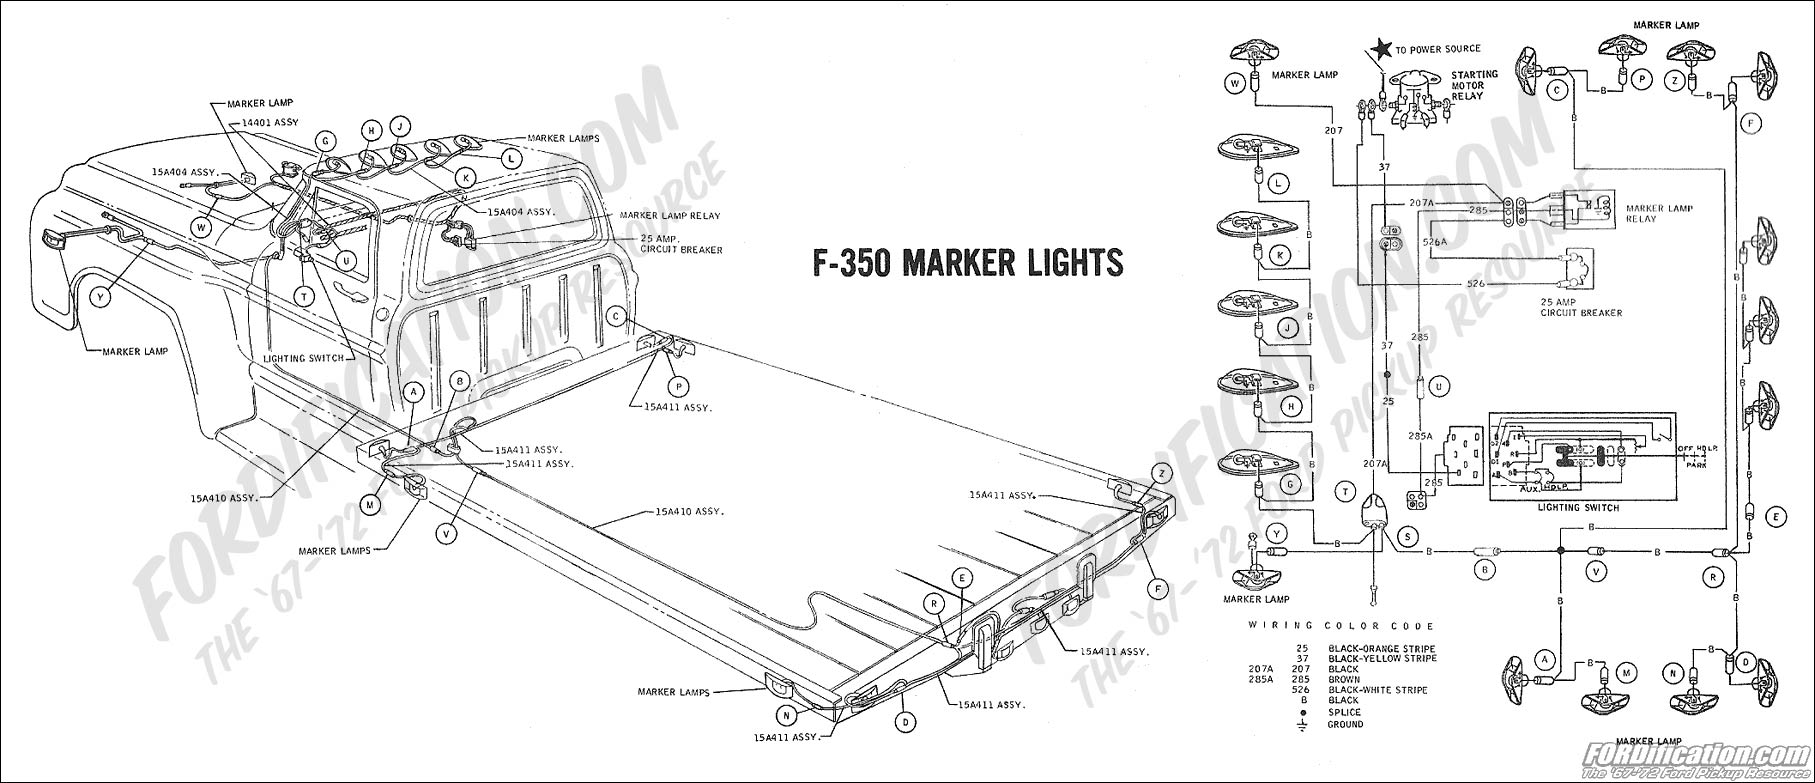 1969 F-350 marker lights